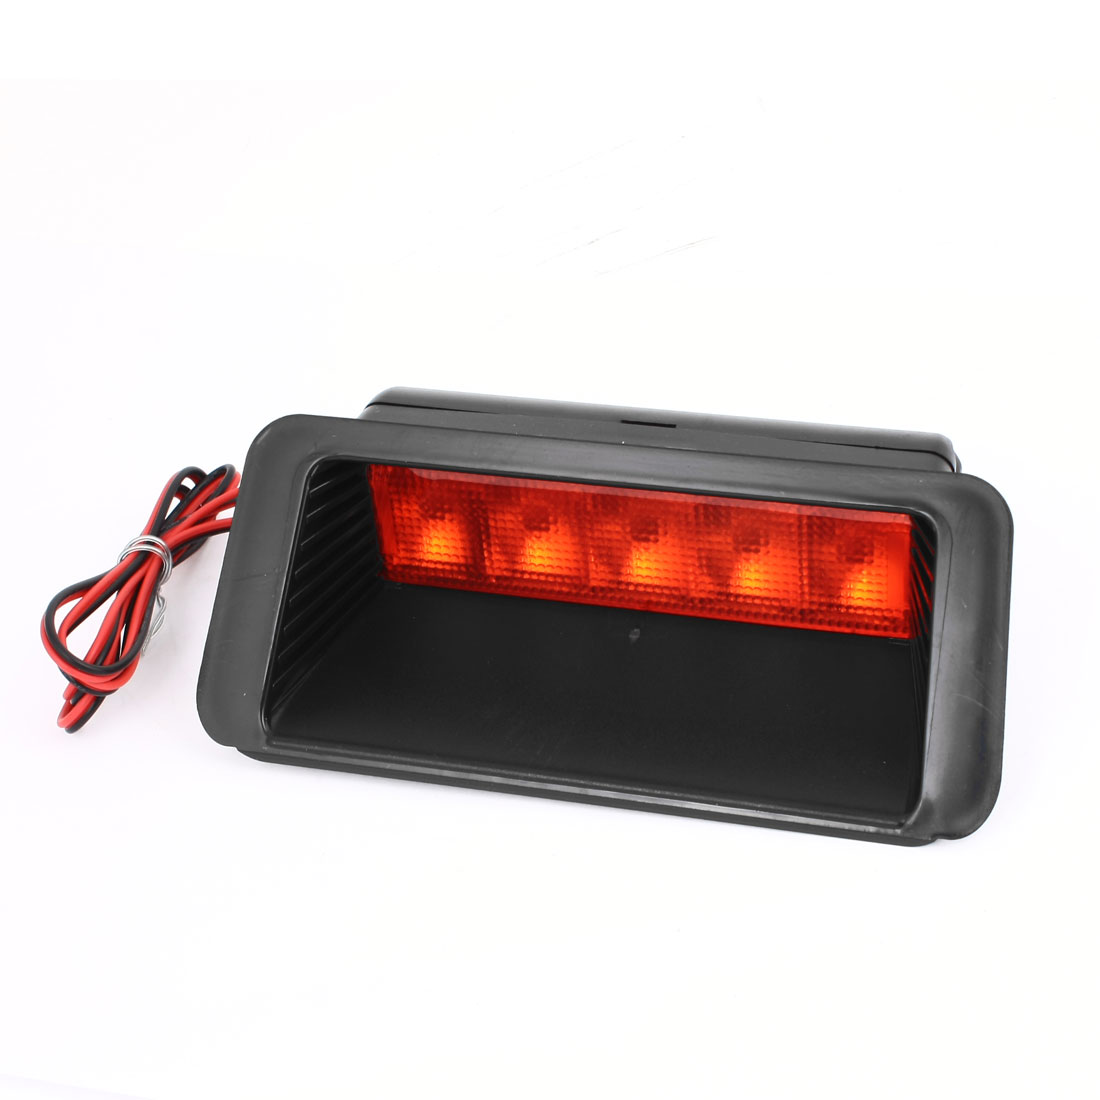 Car Auto Vehicle Trunk 5 Red LED Braking Stopping Lamp Reversing Light 12V